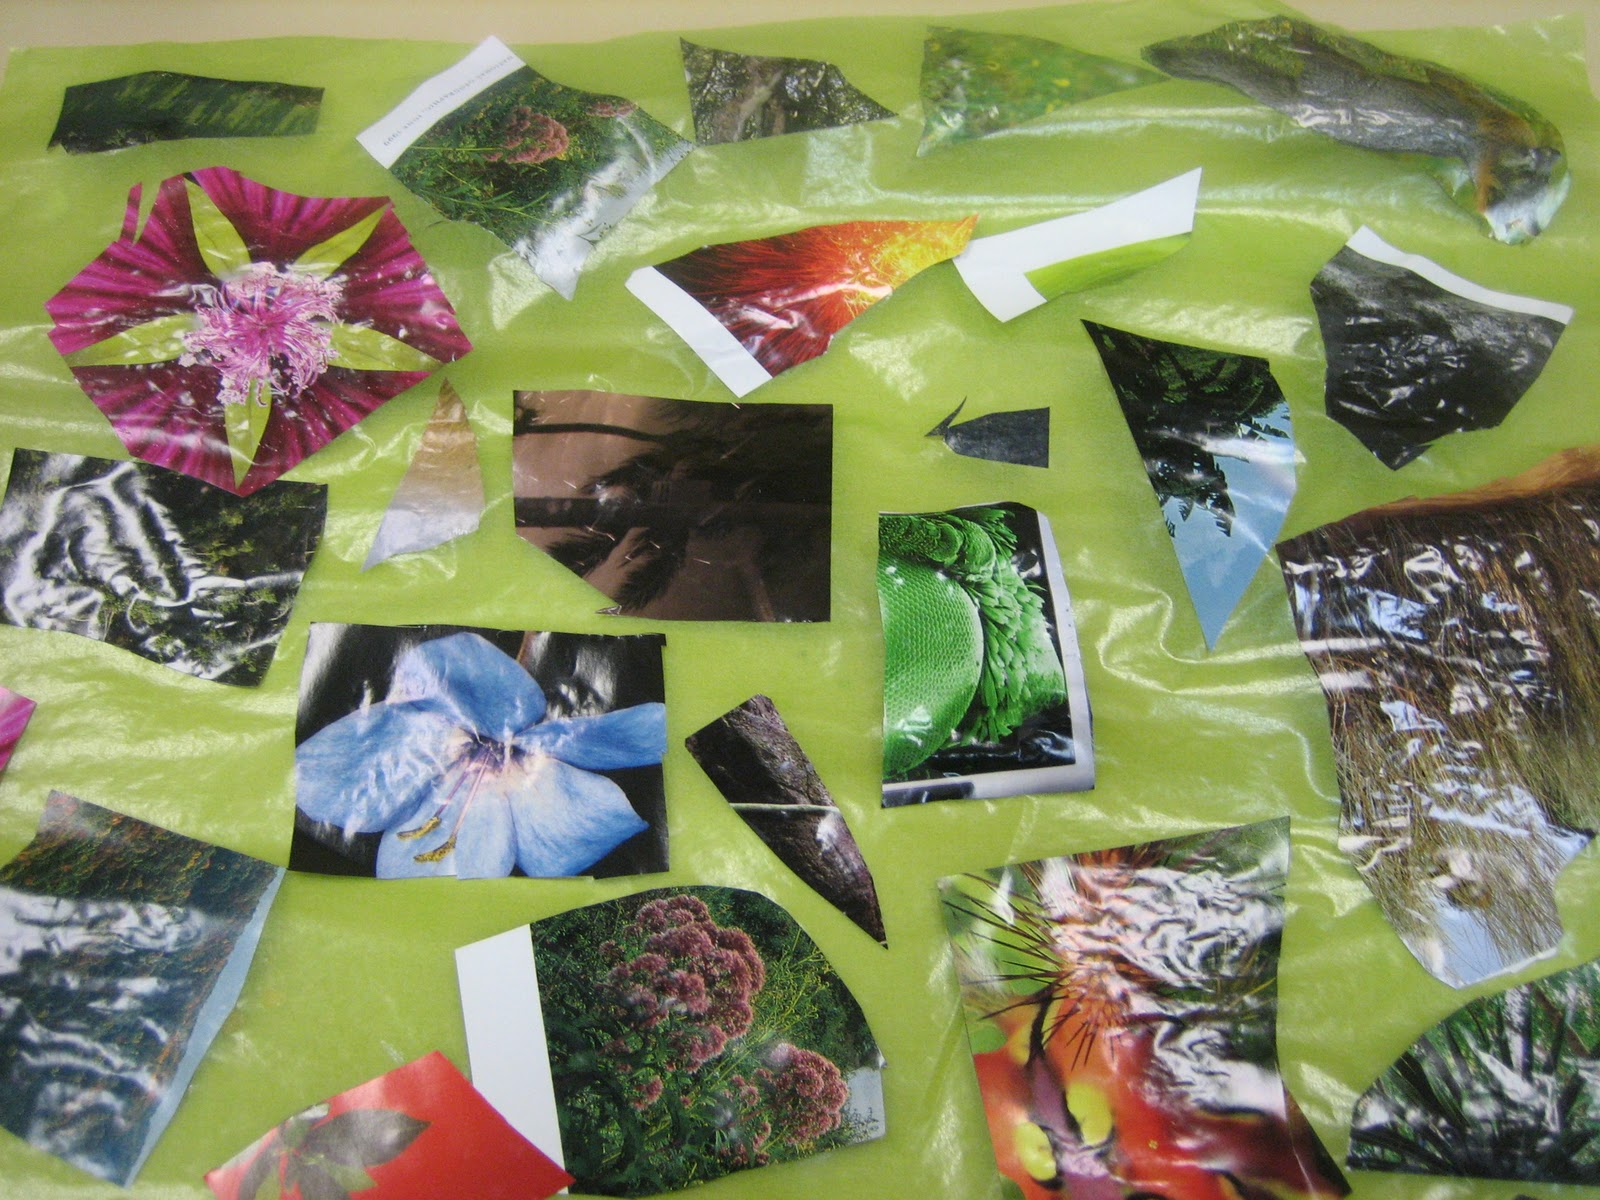 Lower school science 8th age environmental collages things made